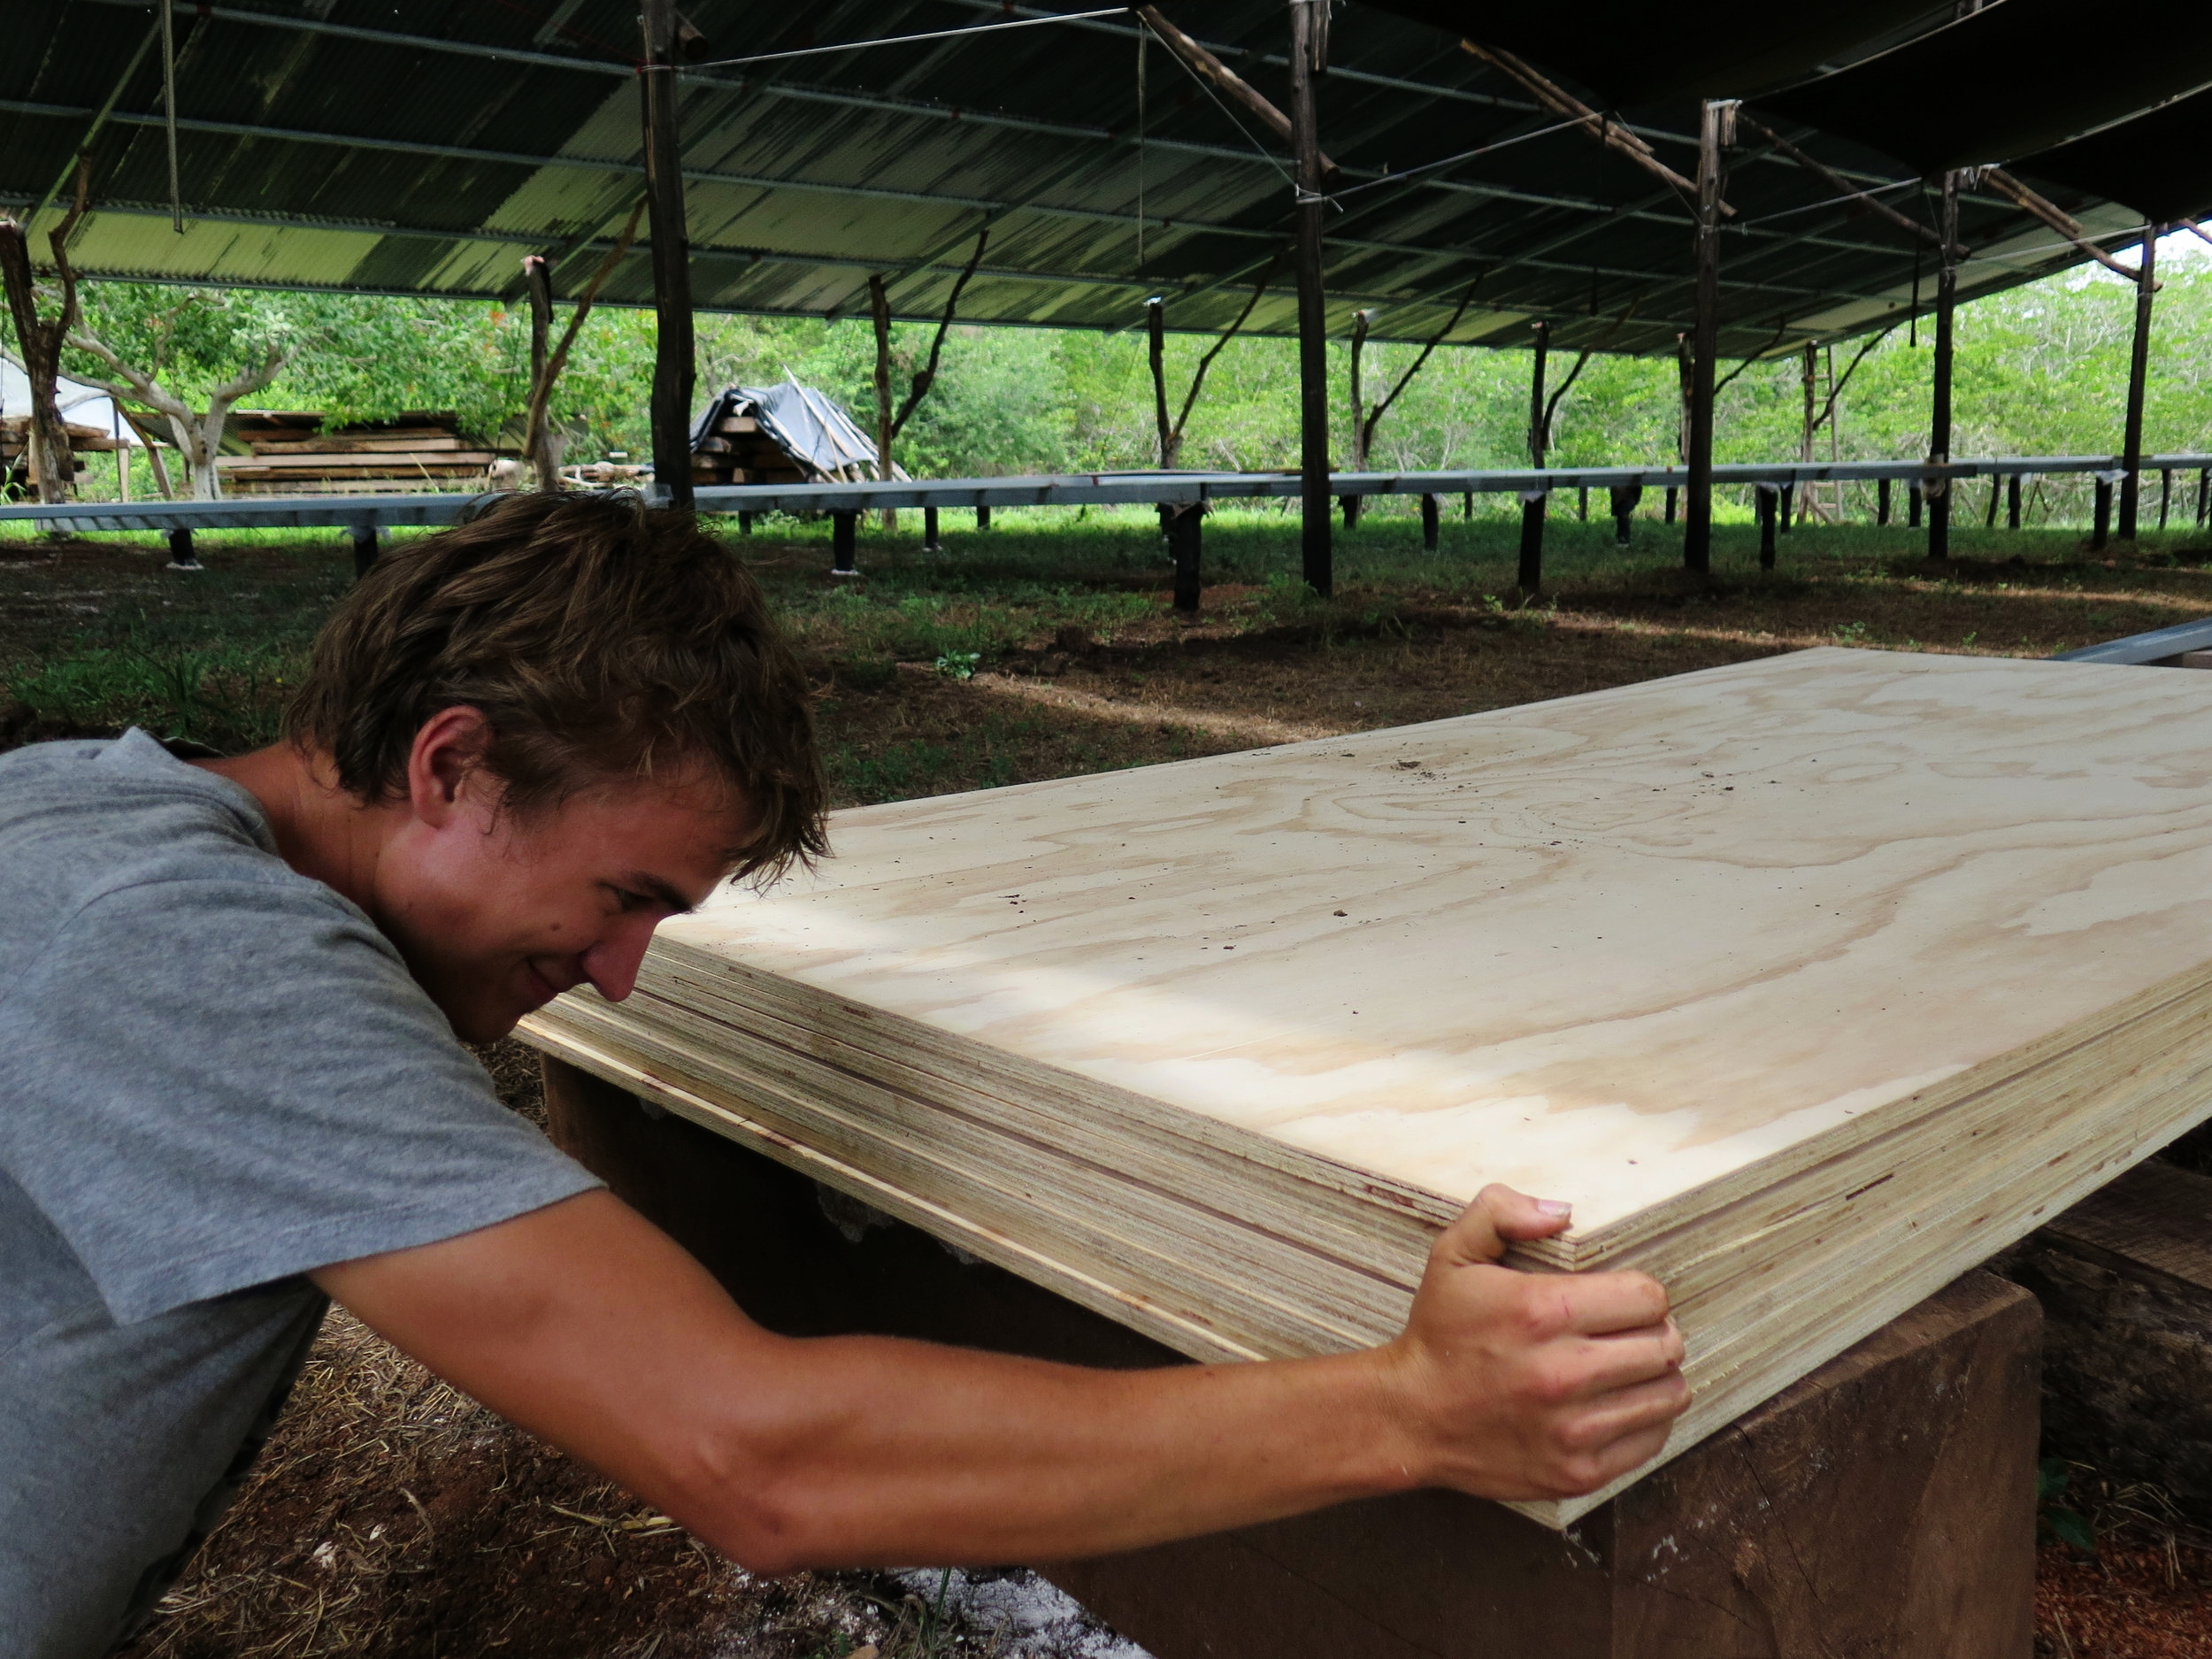 Simon stacking the plywood boards in place a few weeks ago, ready to be painted in white in preparation for laying the lofting floor.